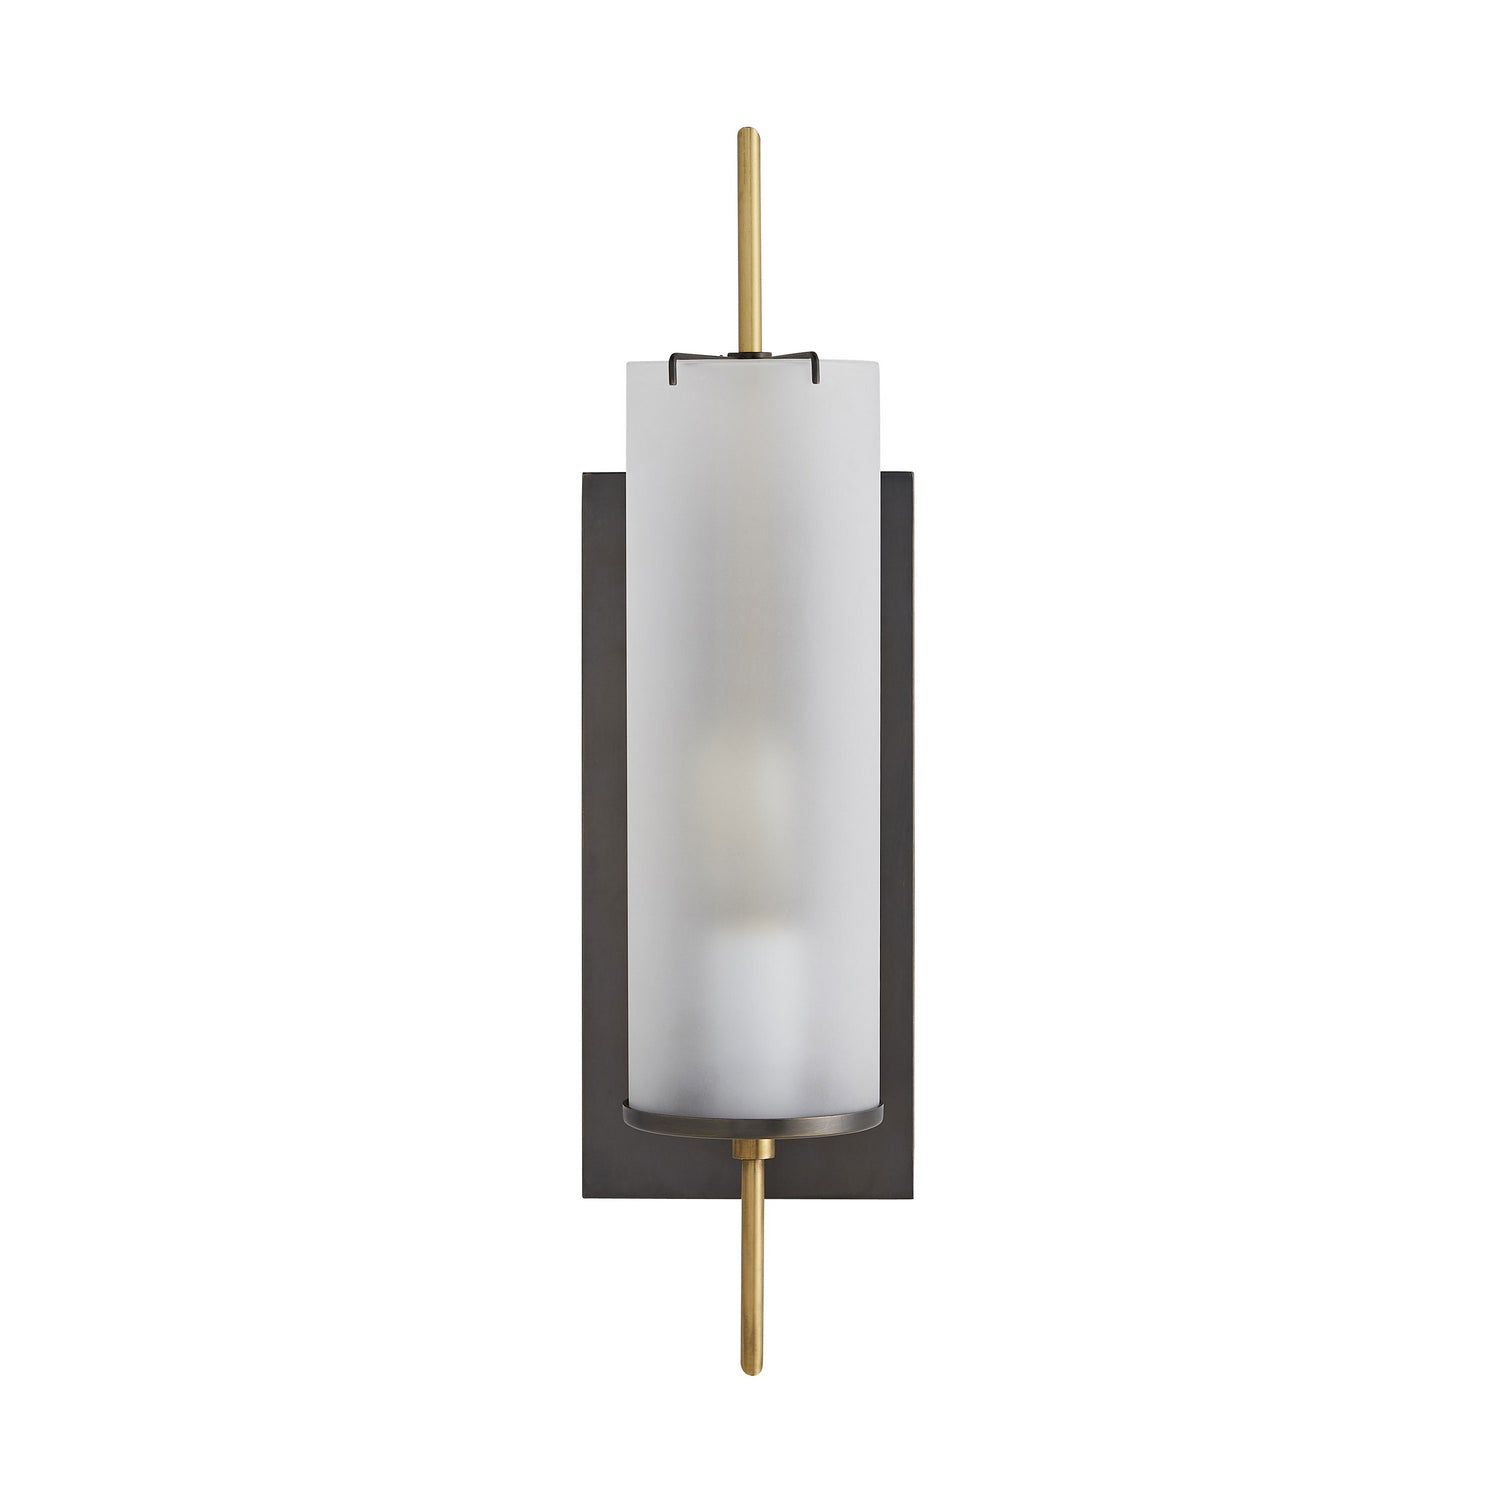 Arteriors - One Light Wall Sconce - Stefan - Bronze